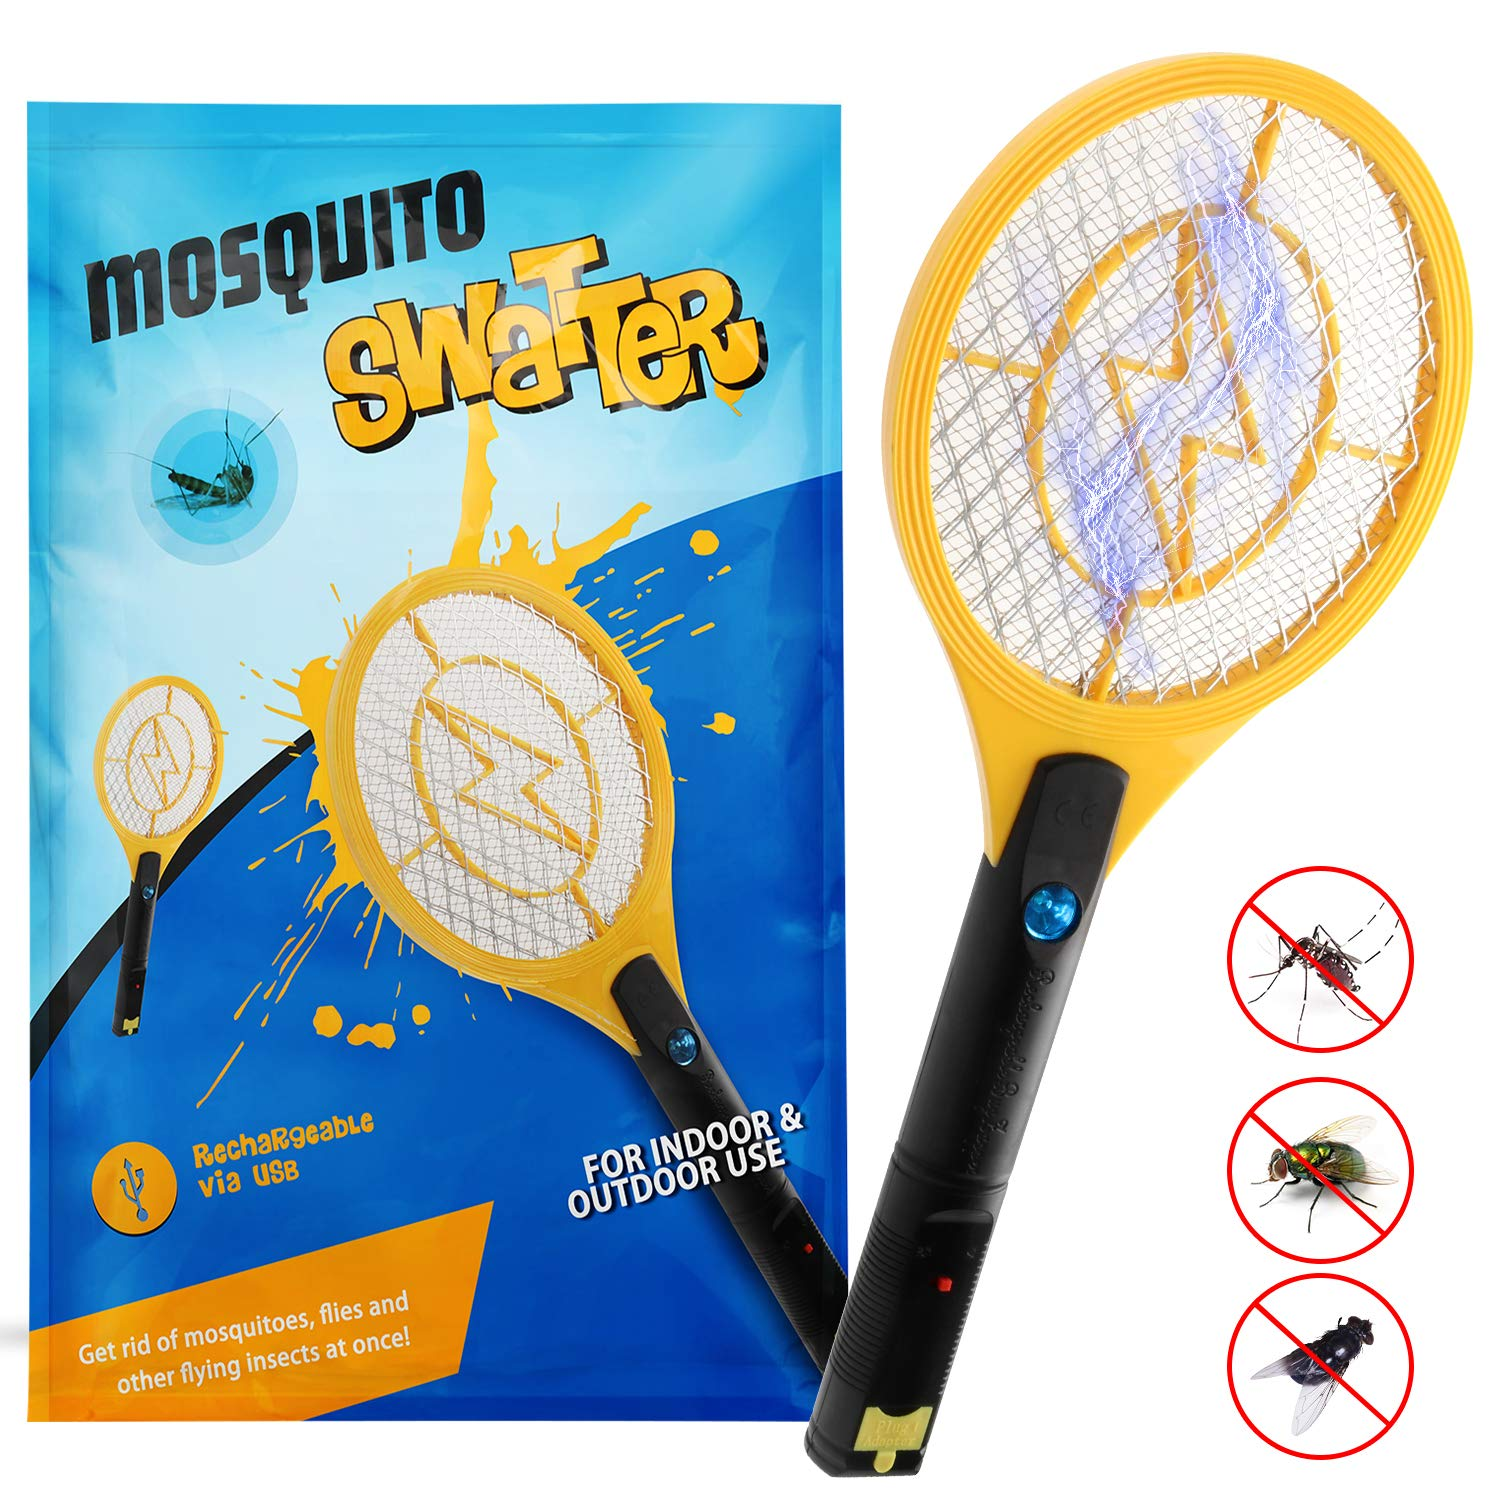 Kekilo Bug Zapper, USB Rechargeable Electric Mosquito, Fly Killer, Bug Zapper Racket and Mosquito Swatter for Indoor and Outdoor Camping Pest Control, 3-Layer Safety Mesh That's Safe to Touch (USB Rechargeable) product image